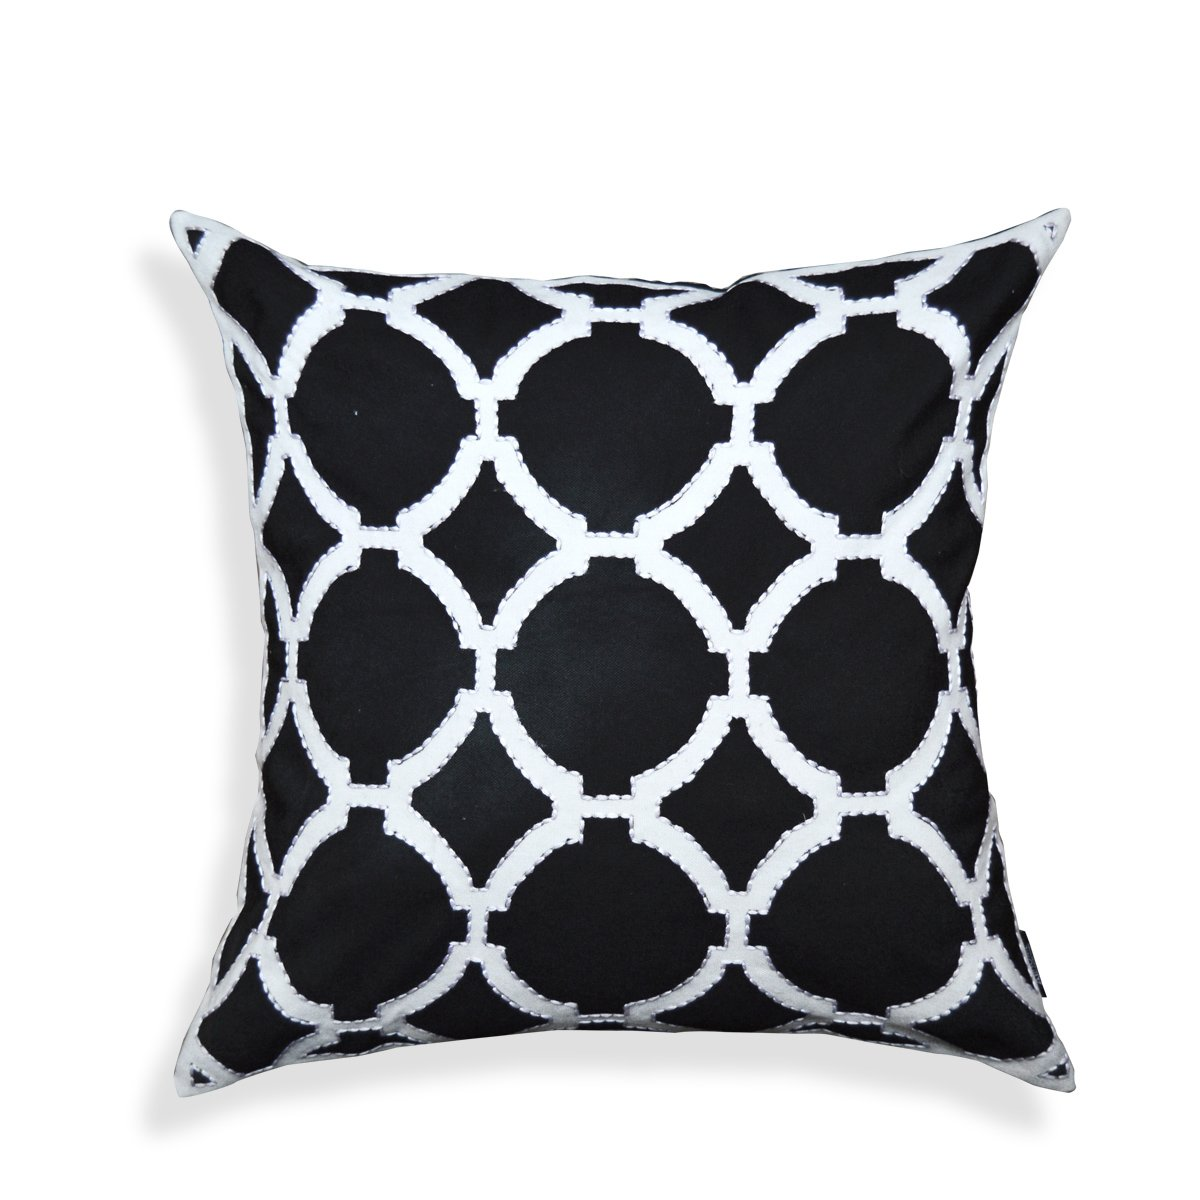 A1 Home Collections a1bw017 A1HC Geometric Pattern Cotton Throw Pillow,Black,